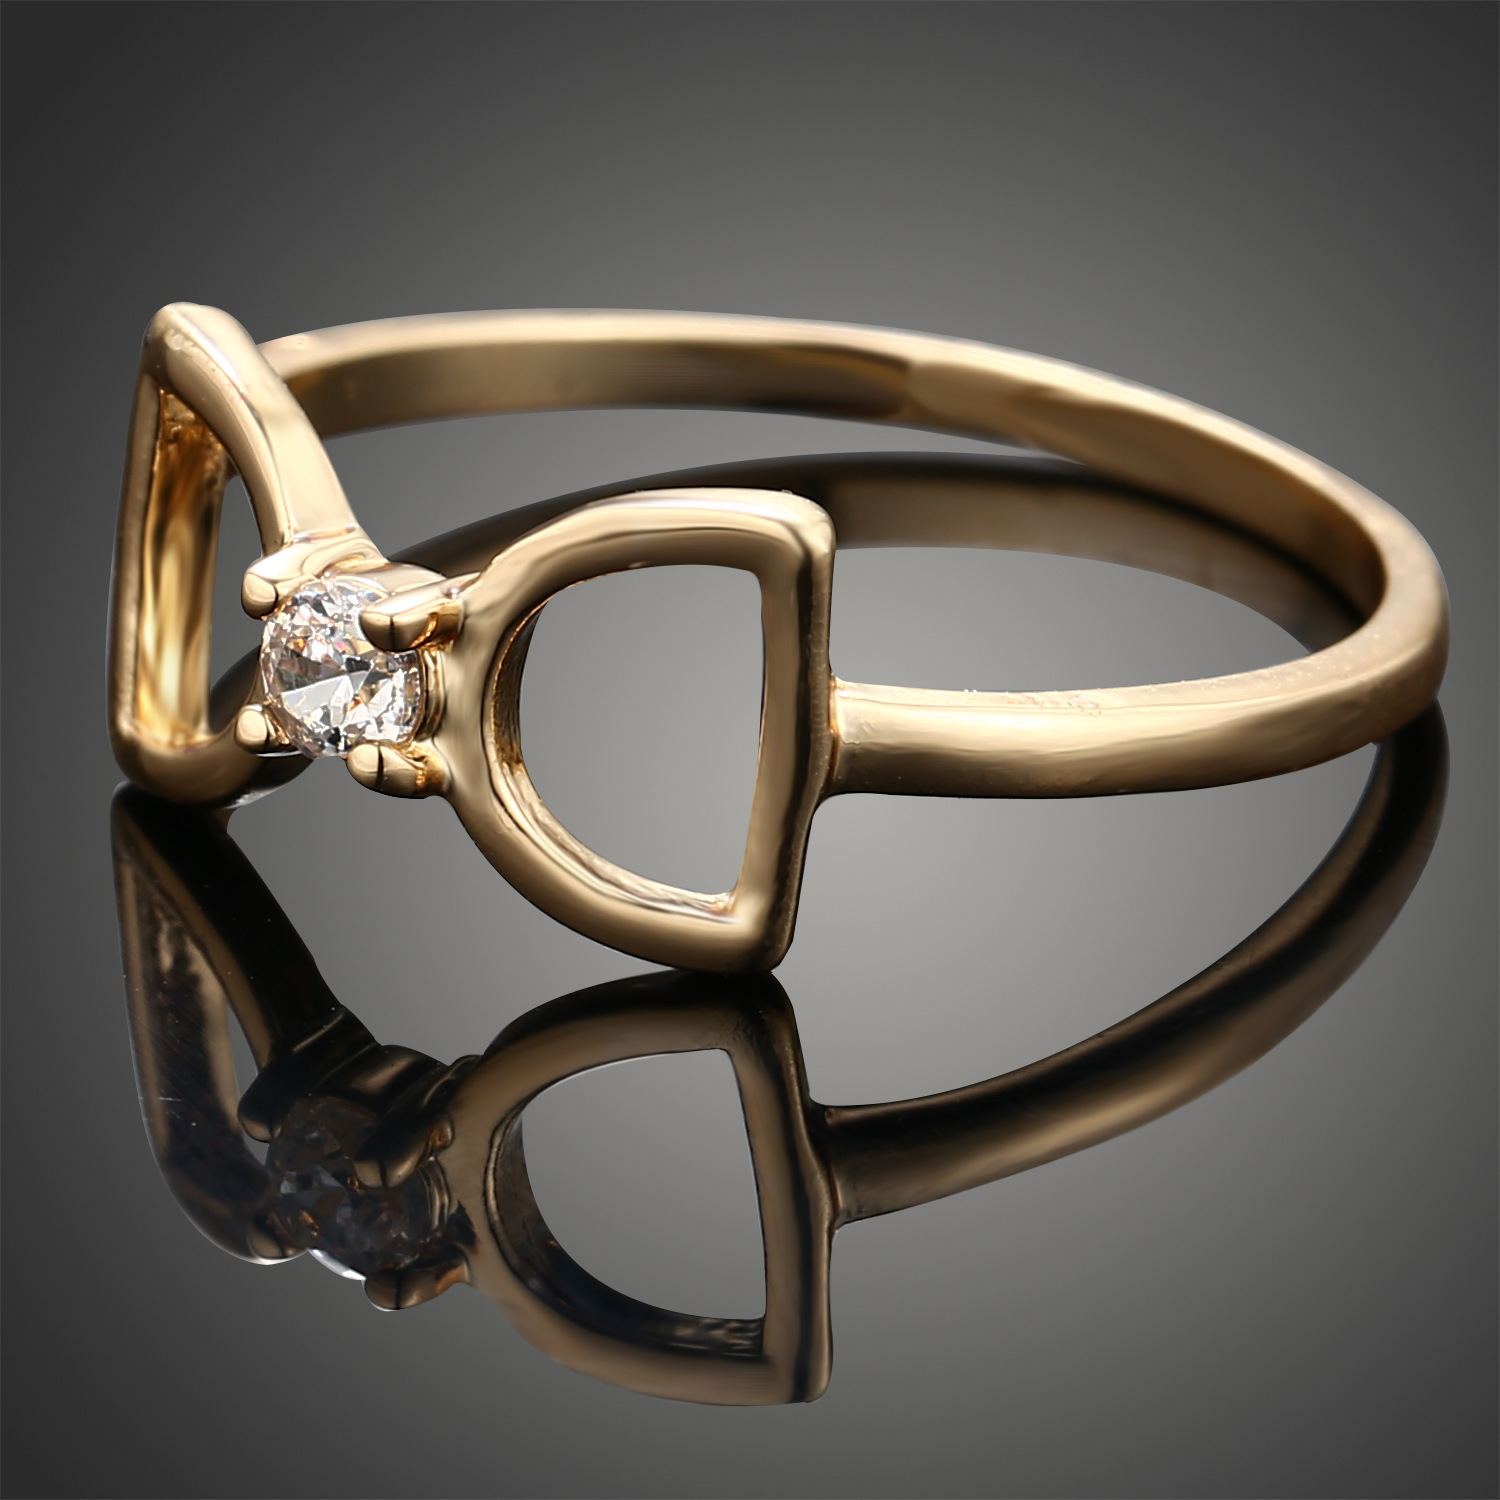 huffpost pretty n o born brides facebook for gold loverly pearl rings in korean engagement ring june